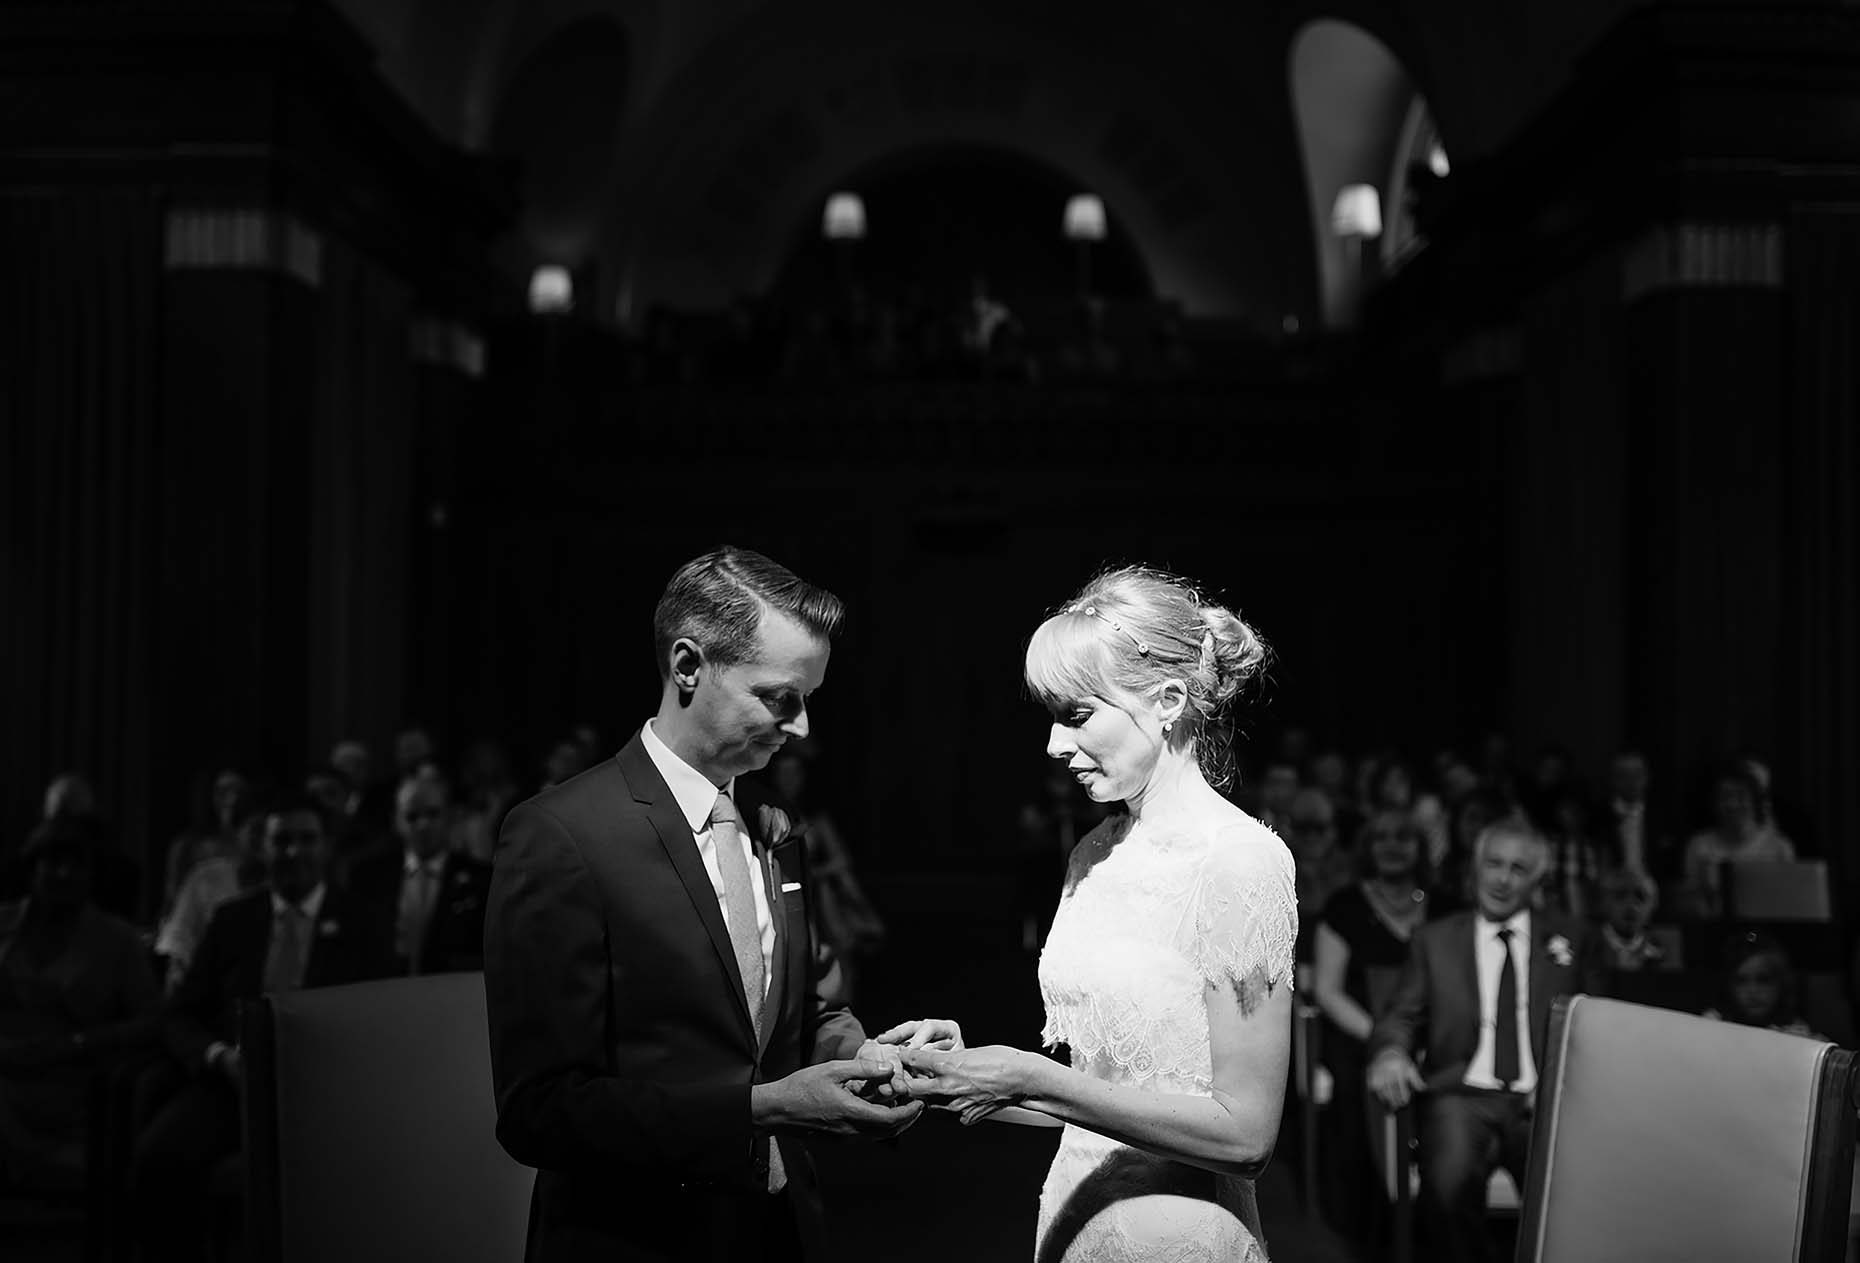 wedding-ceremony-stoke-newington-town-hall-mono-black-white-photography-london-20